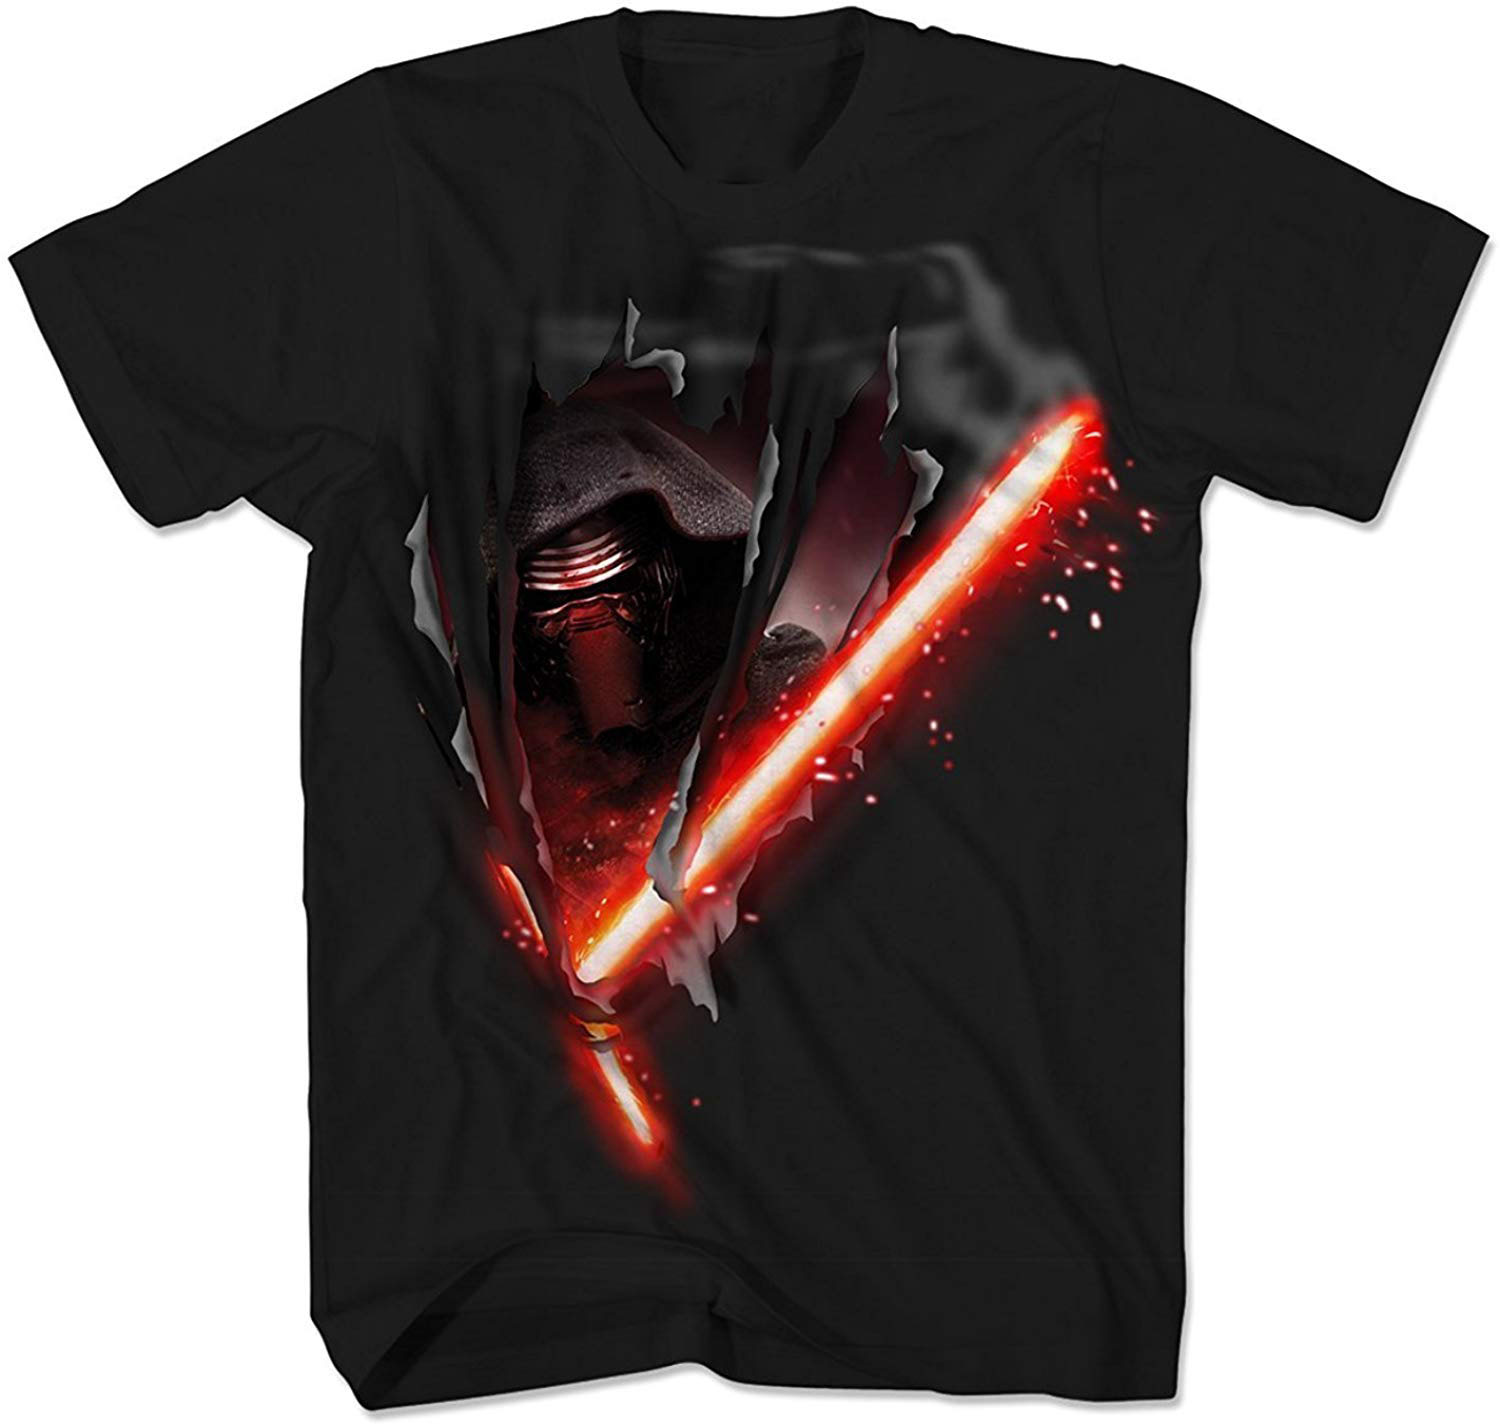 Star Wars Kylo Ren Saber T Shirt Men Women Tops New Unisex Funny TEE Shirt